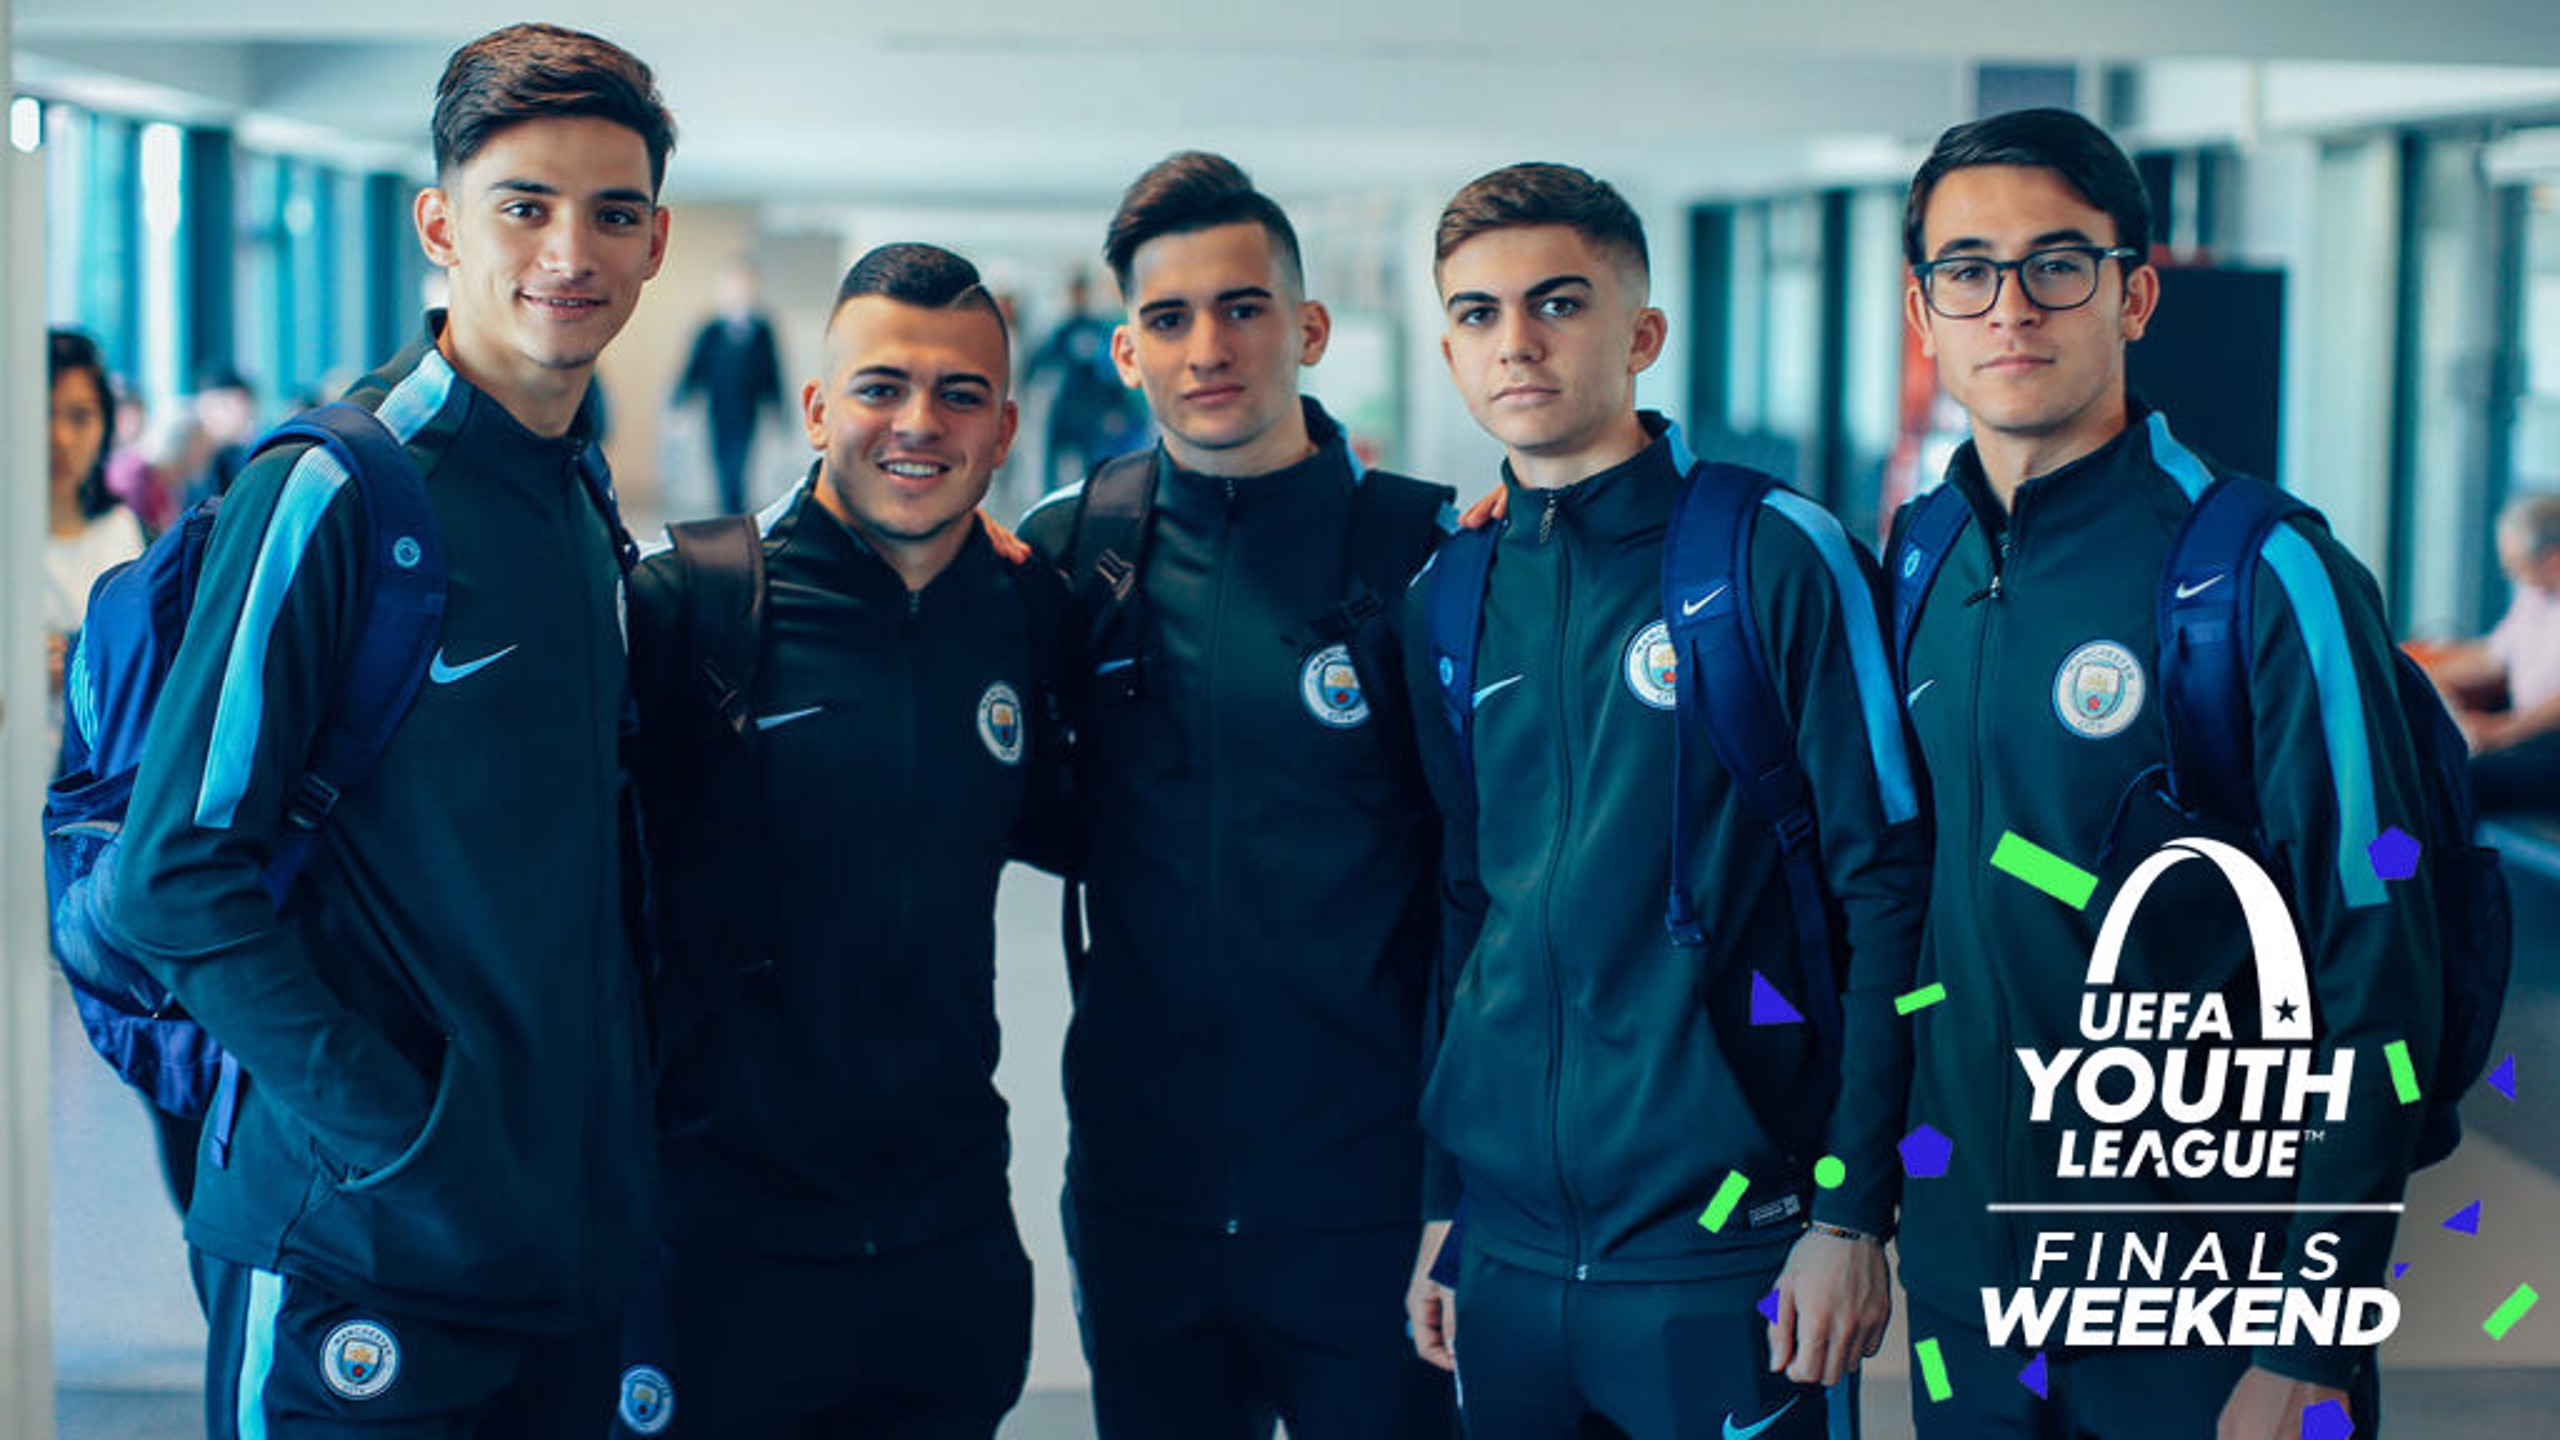 DEPARTURE: Our U19s prepare to leave for the UEFA Youth League final in Switzerland.